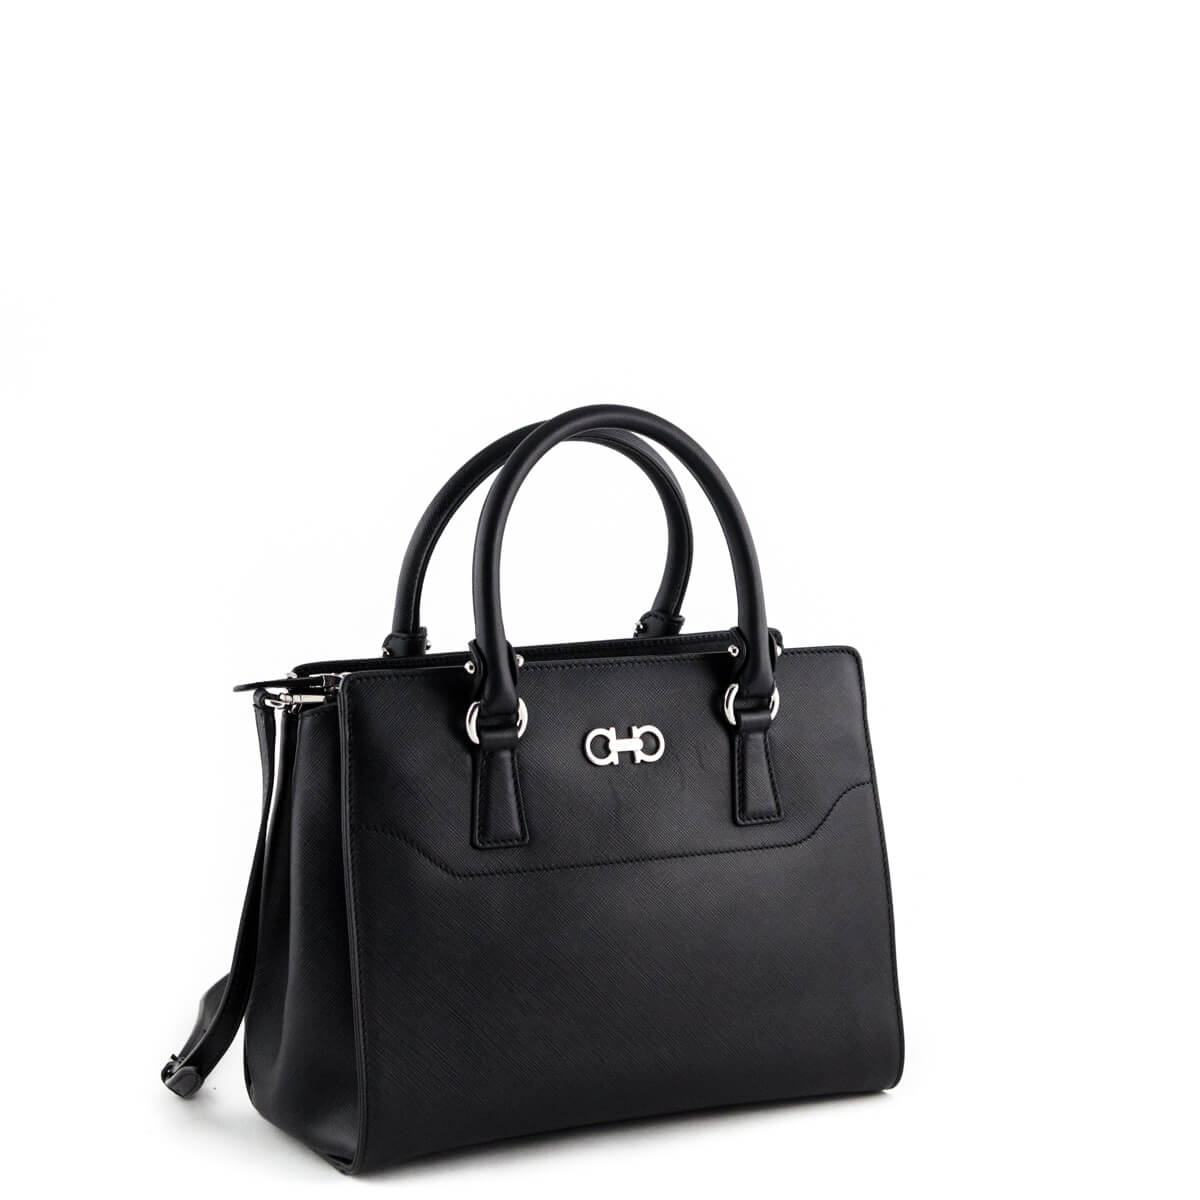 Many Kinds Of Sale Online Beky tote - Black Salvatore Ferragamo Popular And Cheap Discount Hot Sale h410TvqvGA